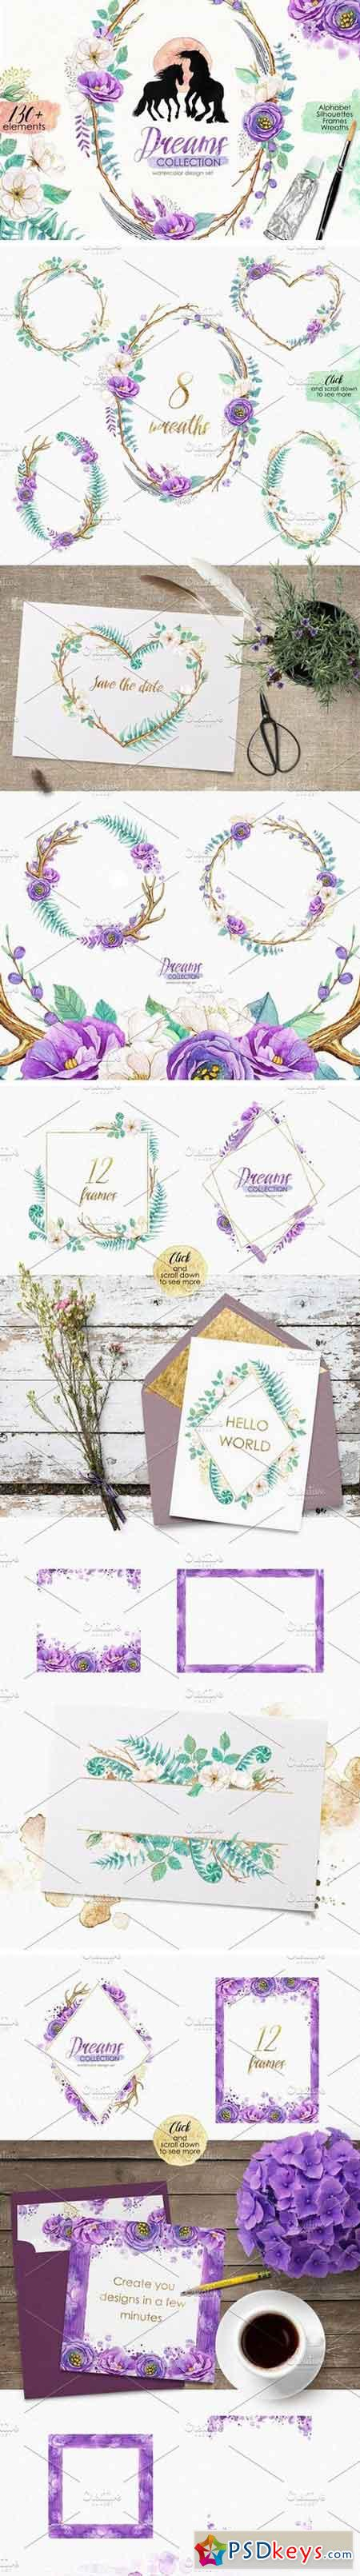 Watercolor design set - DREAMS 2278623